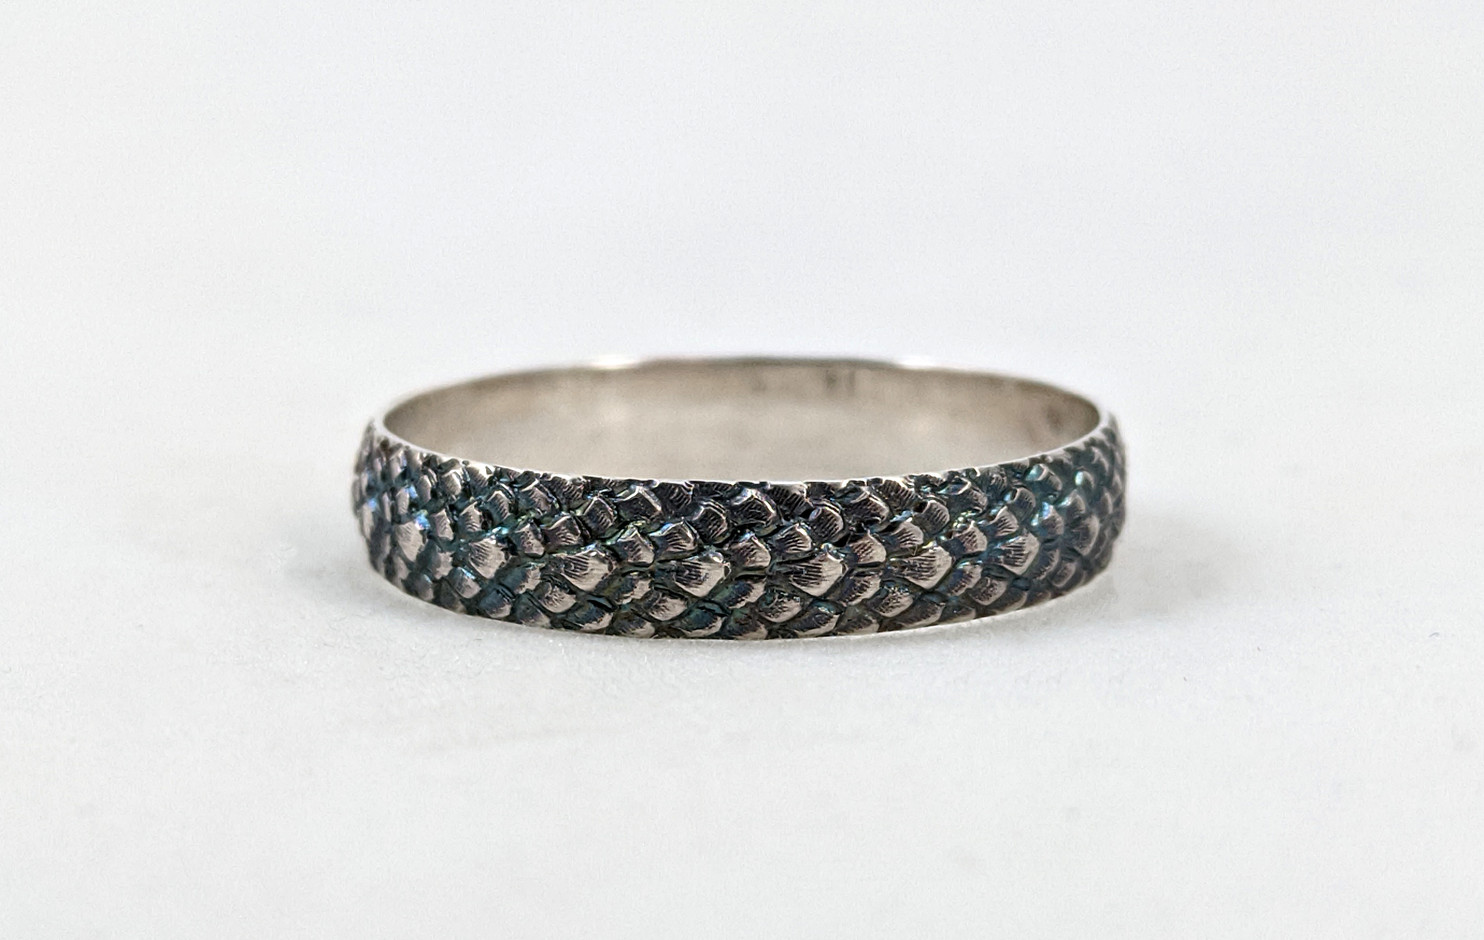 Dragonscale Patinaed Sterling Band